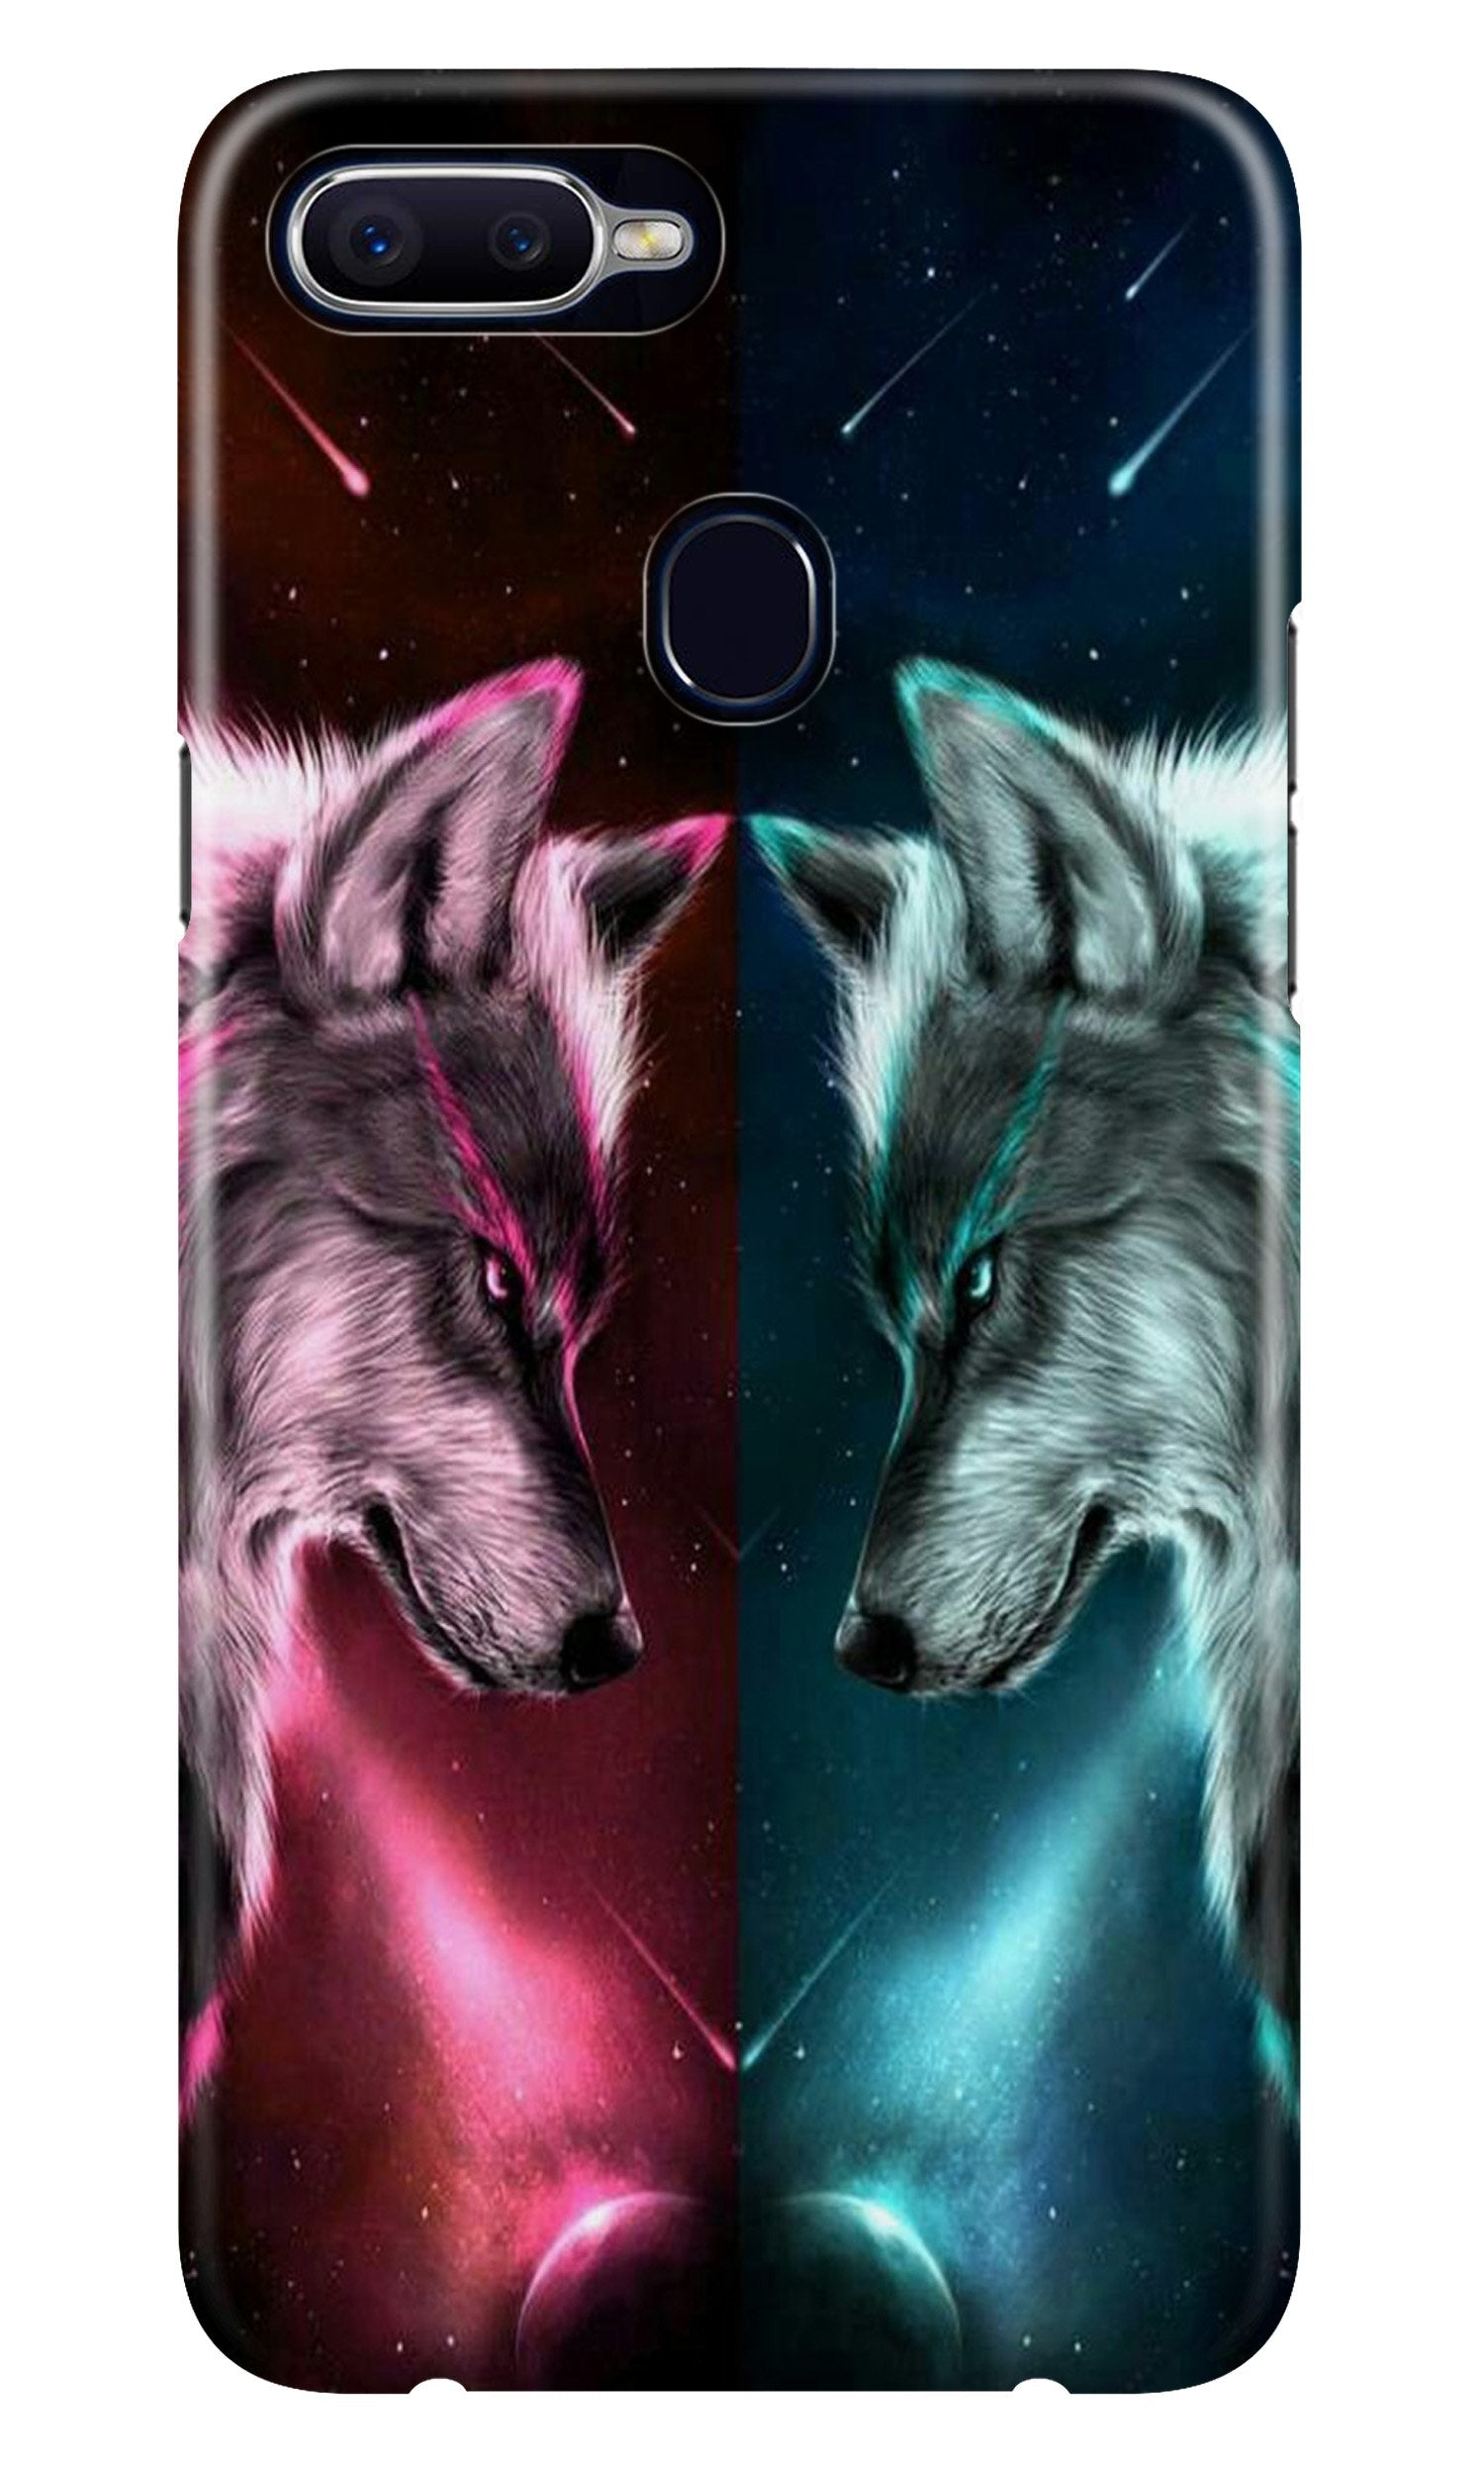 Wolf fight Case for Oppo A5s (Design No. 221)